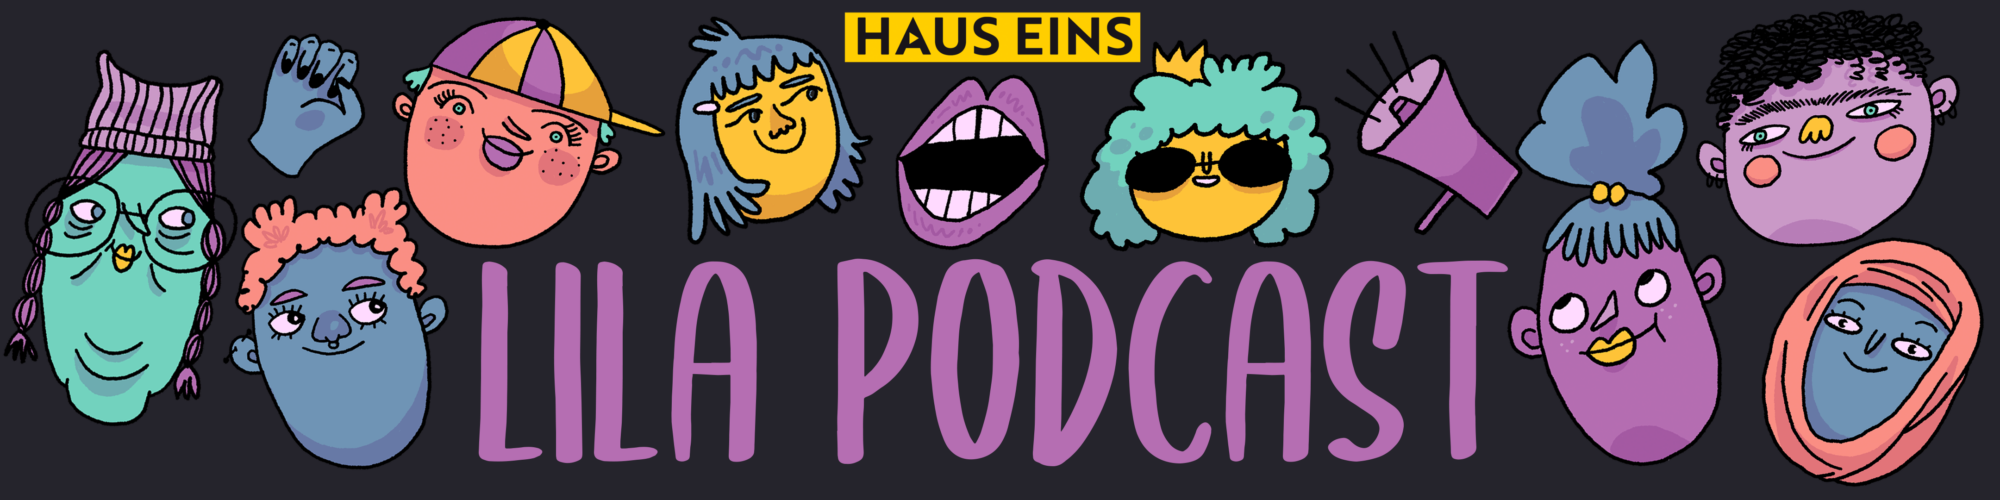 Der Lila Podcast